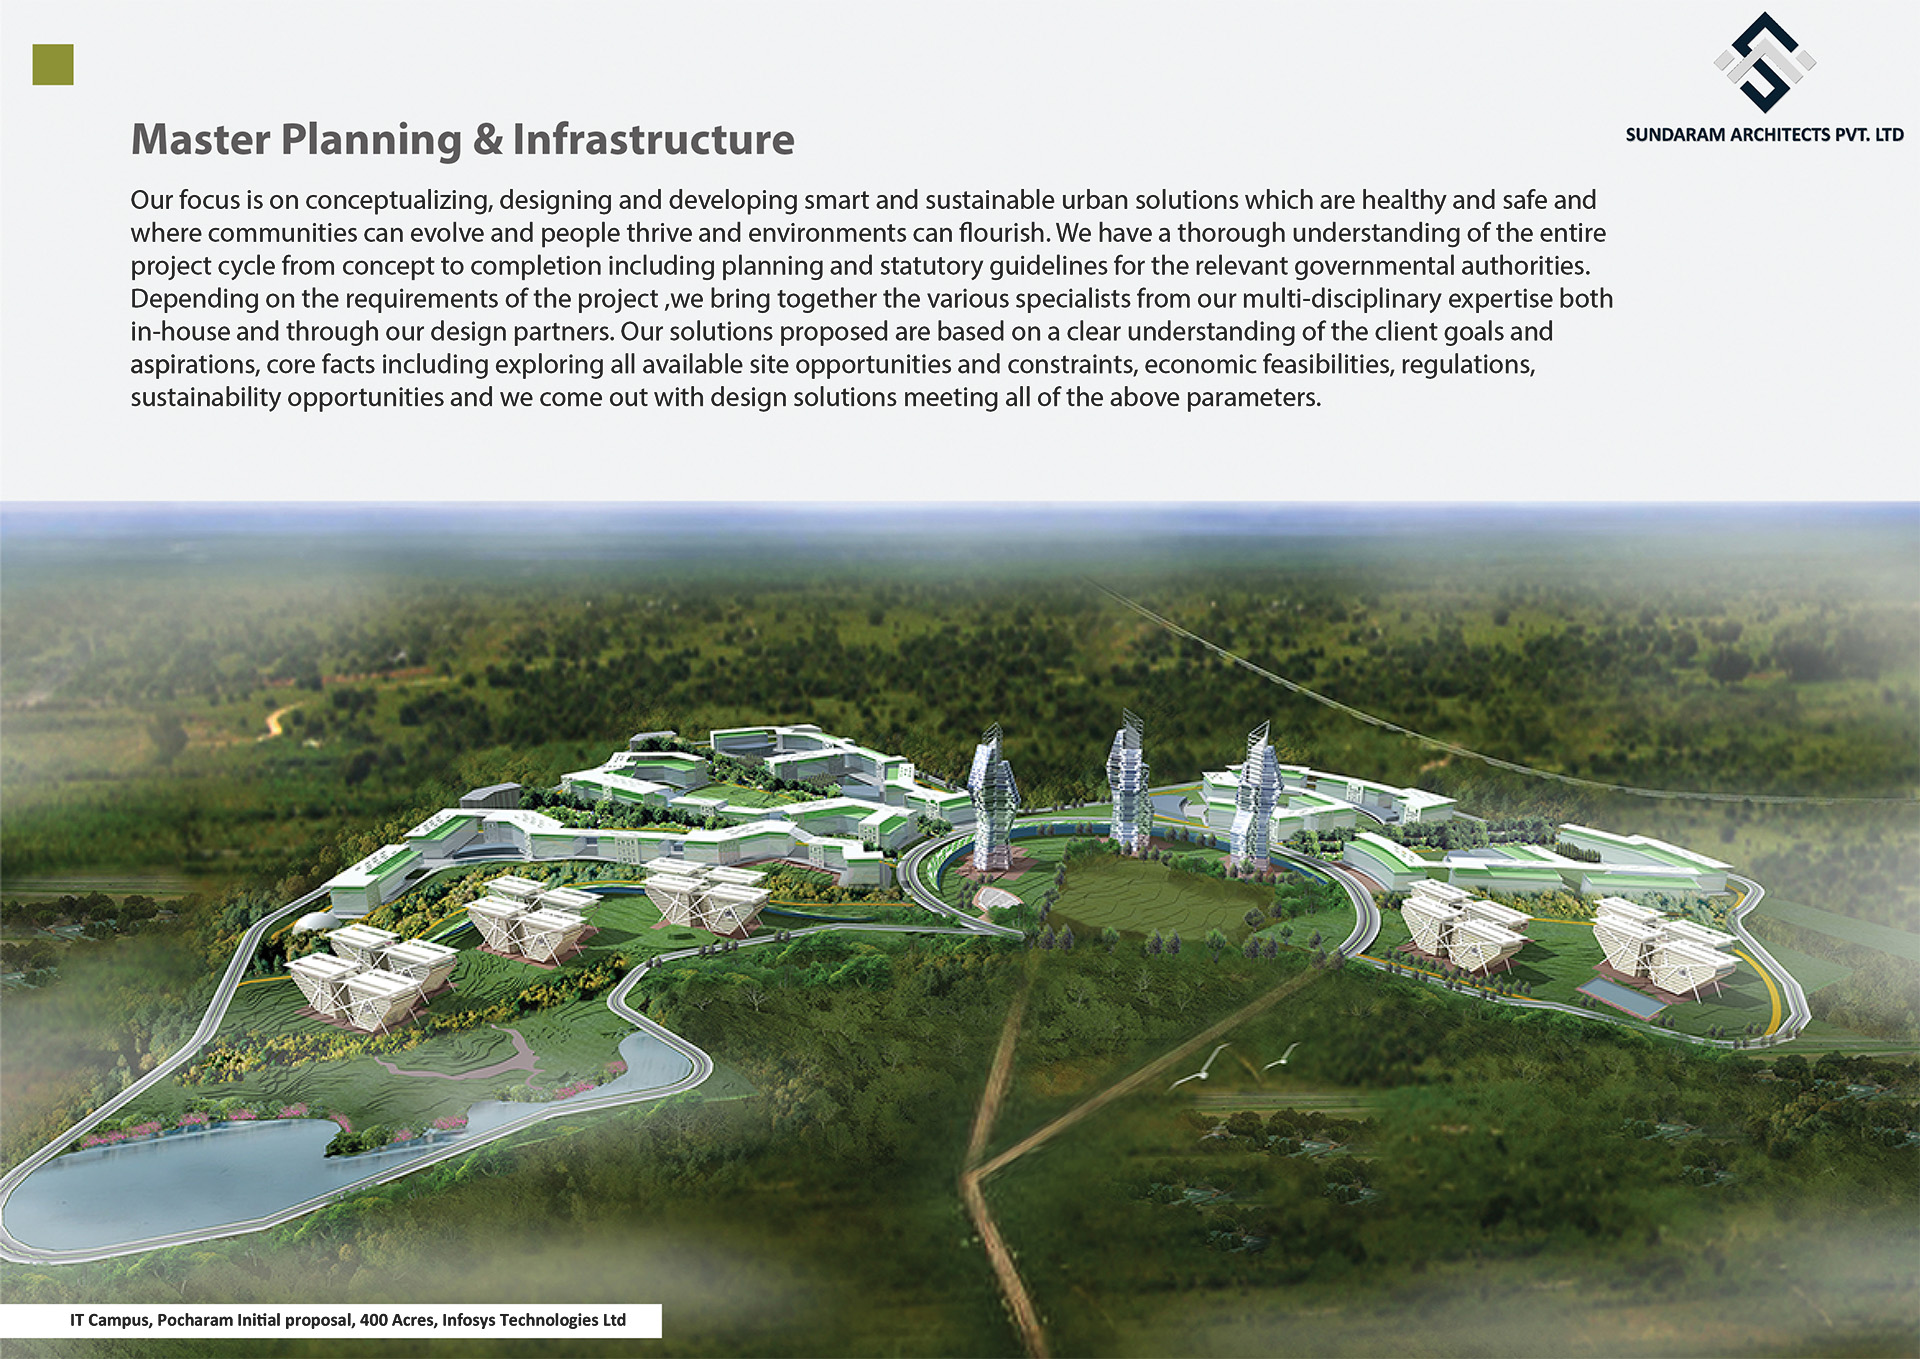 Infosys IT Campus - Pocharam, Hyderabad - Master Planning & Infrastructure Design - Smart and Sustainable Urban Design